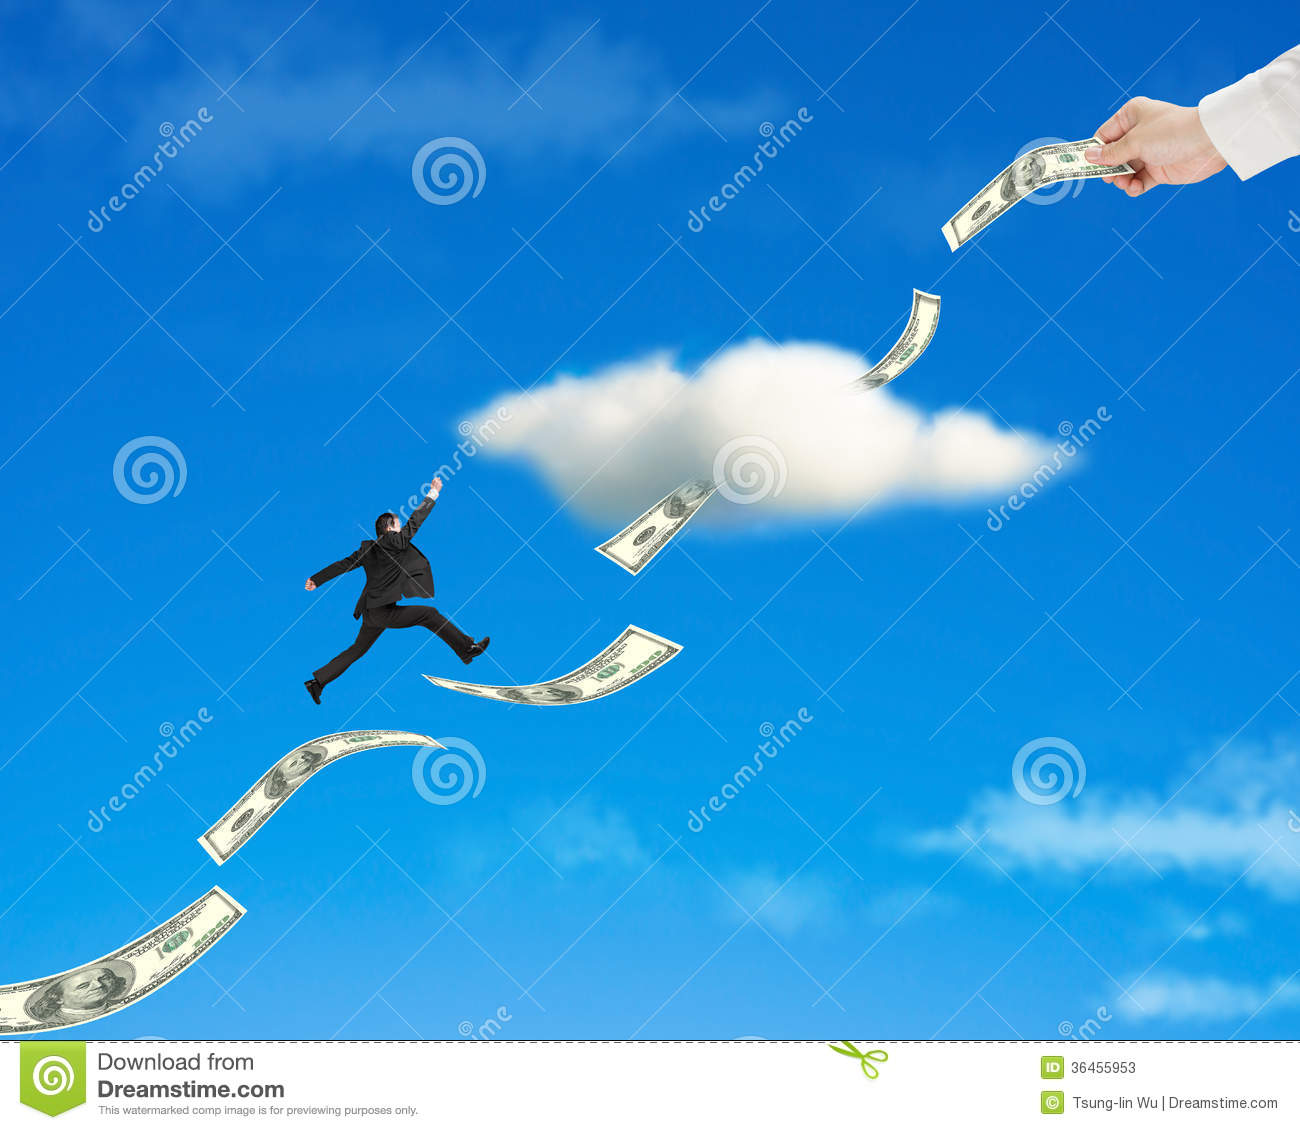 Businessman jumping on money trend through cloud with hand holding